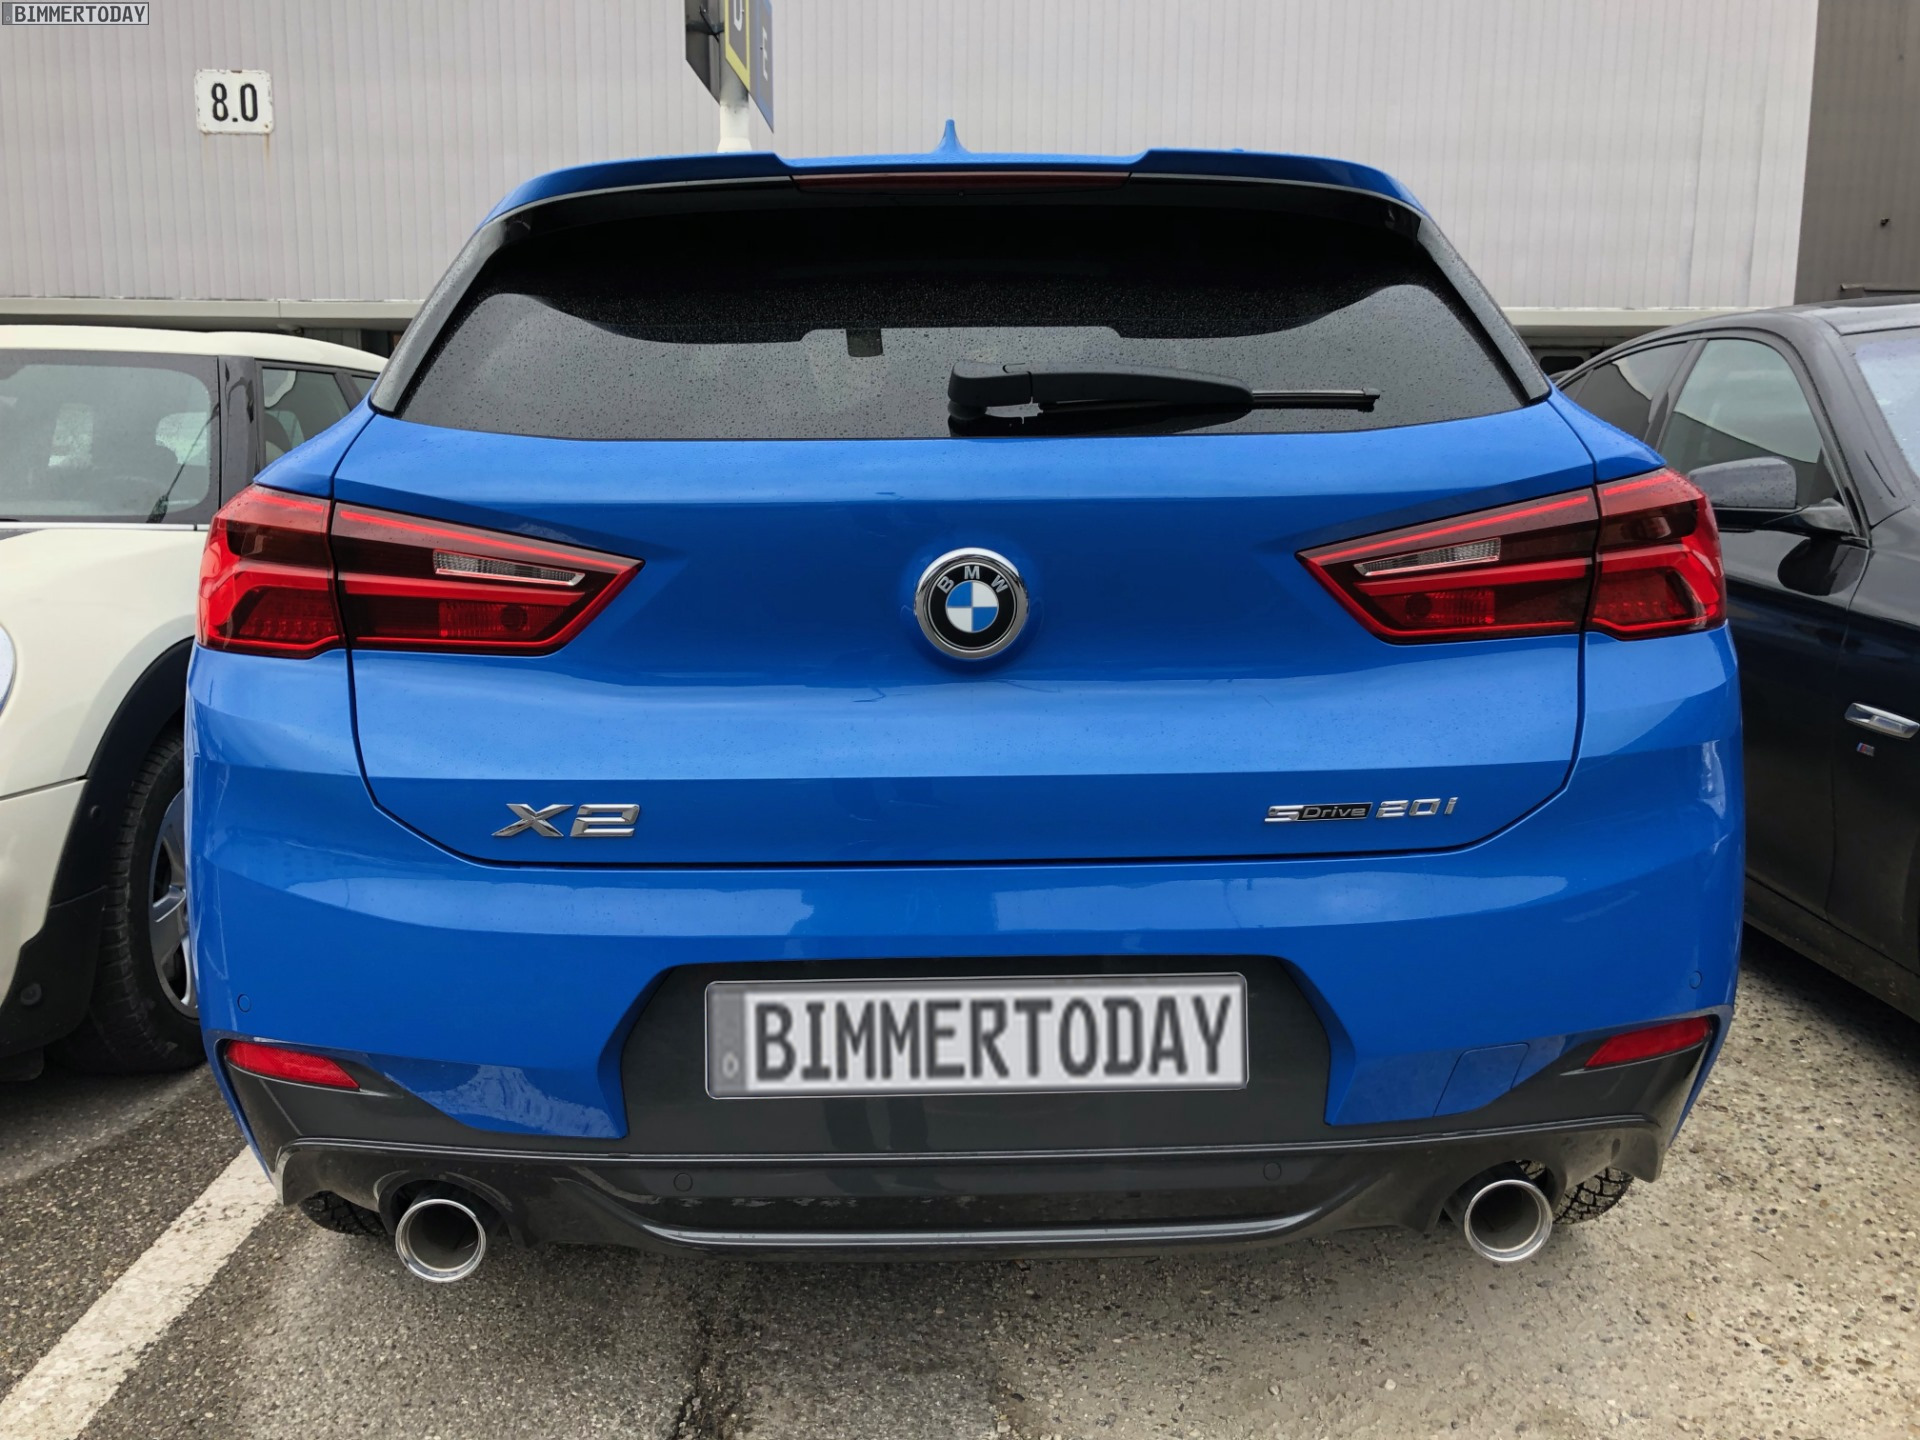 Bmw X2 2017 Price >> Live Photos of the BMW X2 spotted in Germany